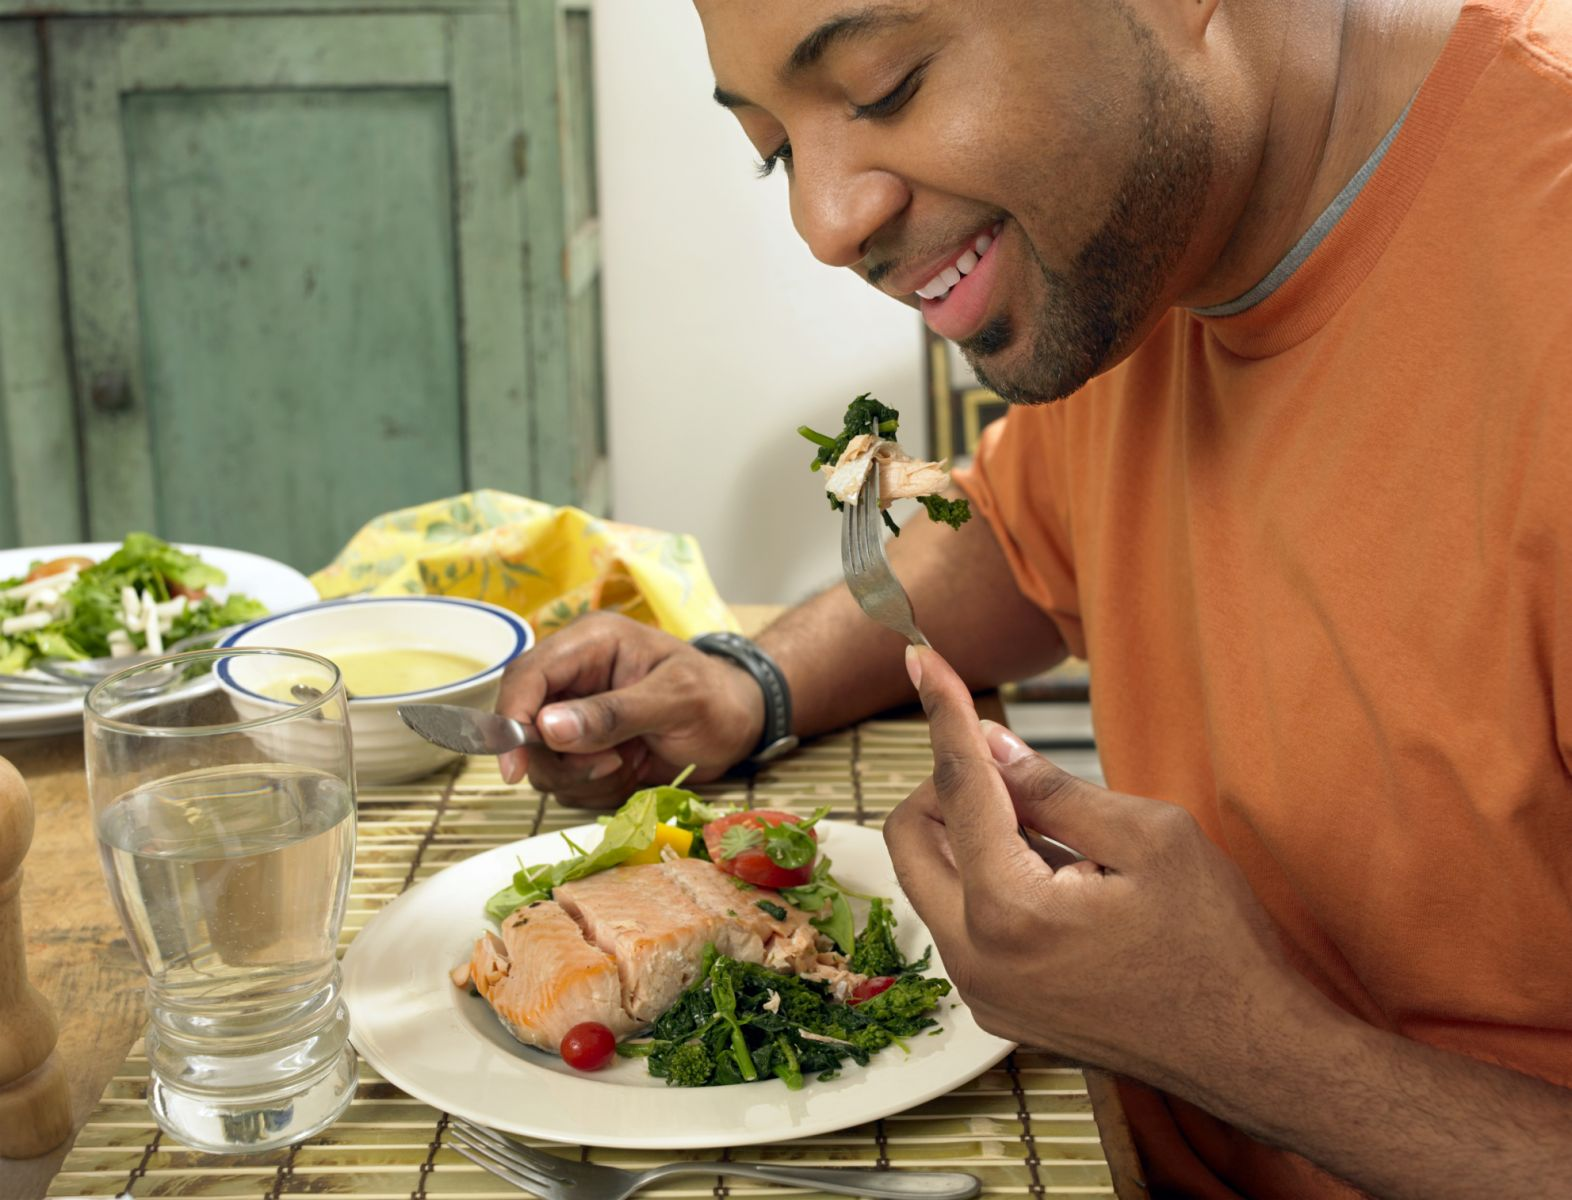 Man eating salmon , a good source of heart-protecting omega-3 fatty acides